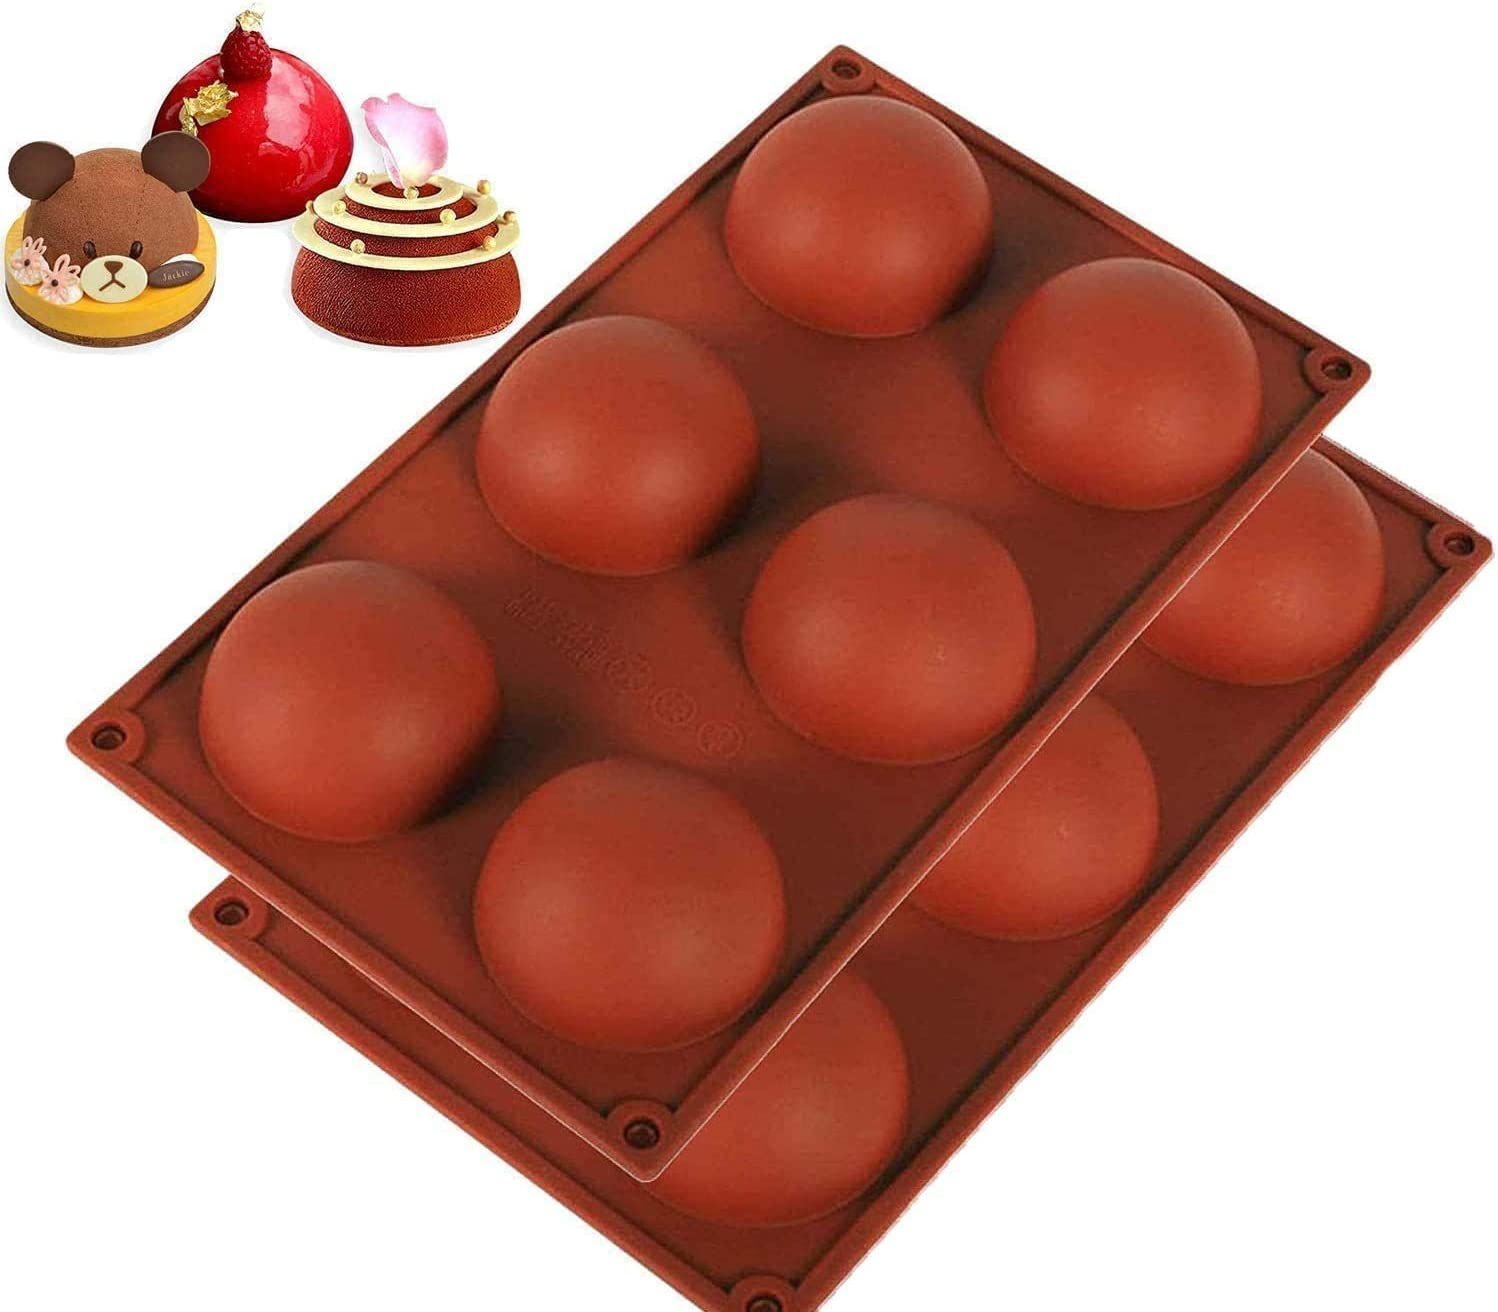 2Pack-2.7 inch hot silicone chocolate mold, 2.7